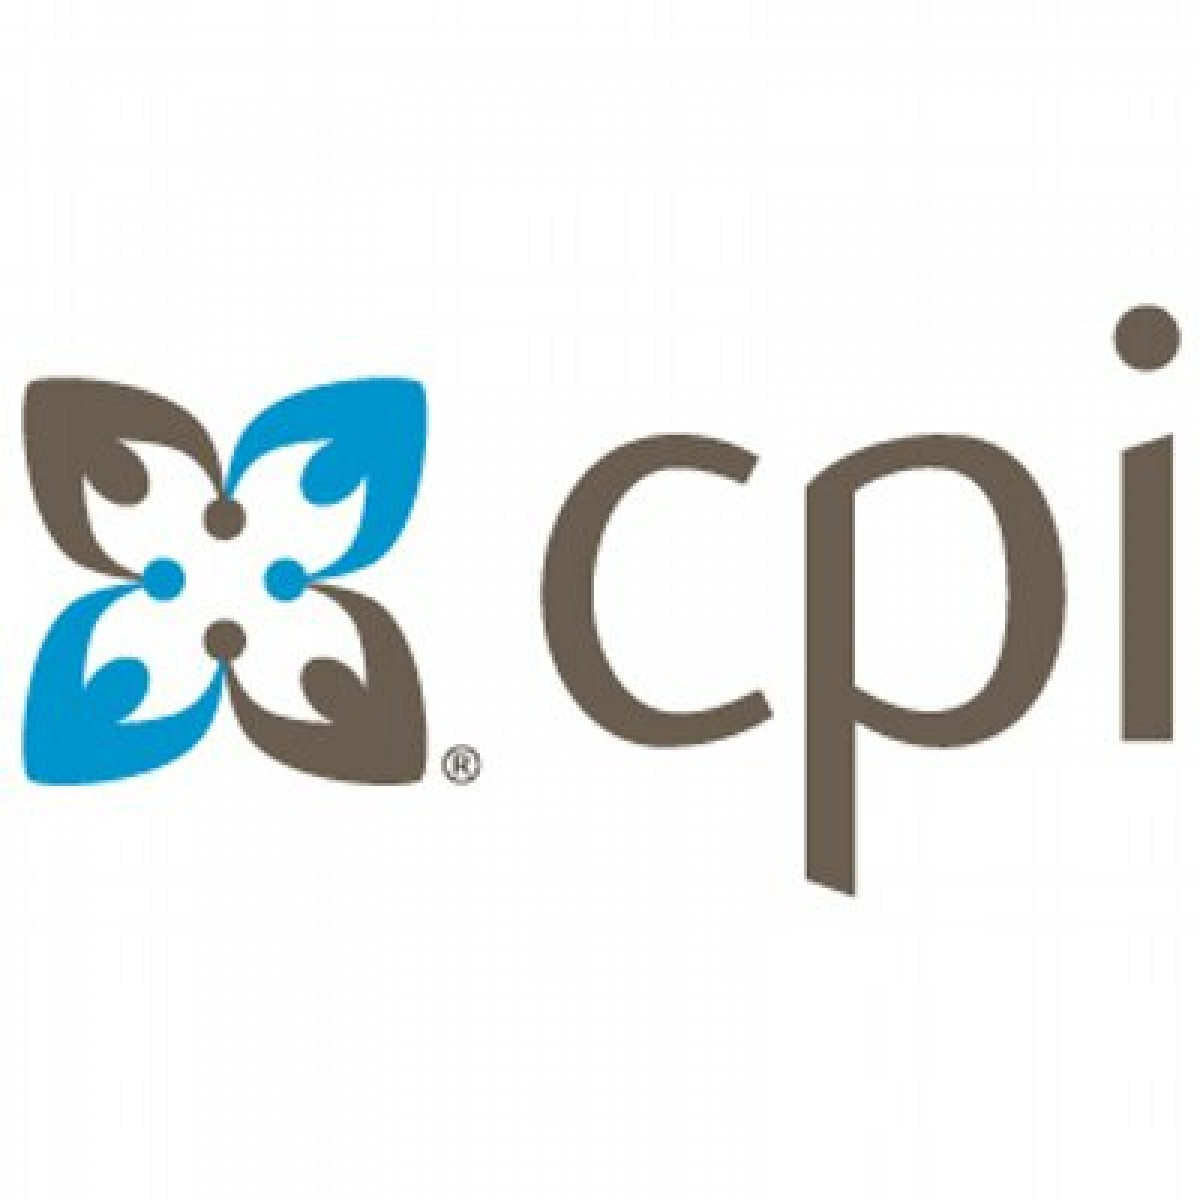 Cpi Certification Information On Crisis Prevention Training